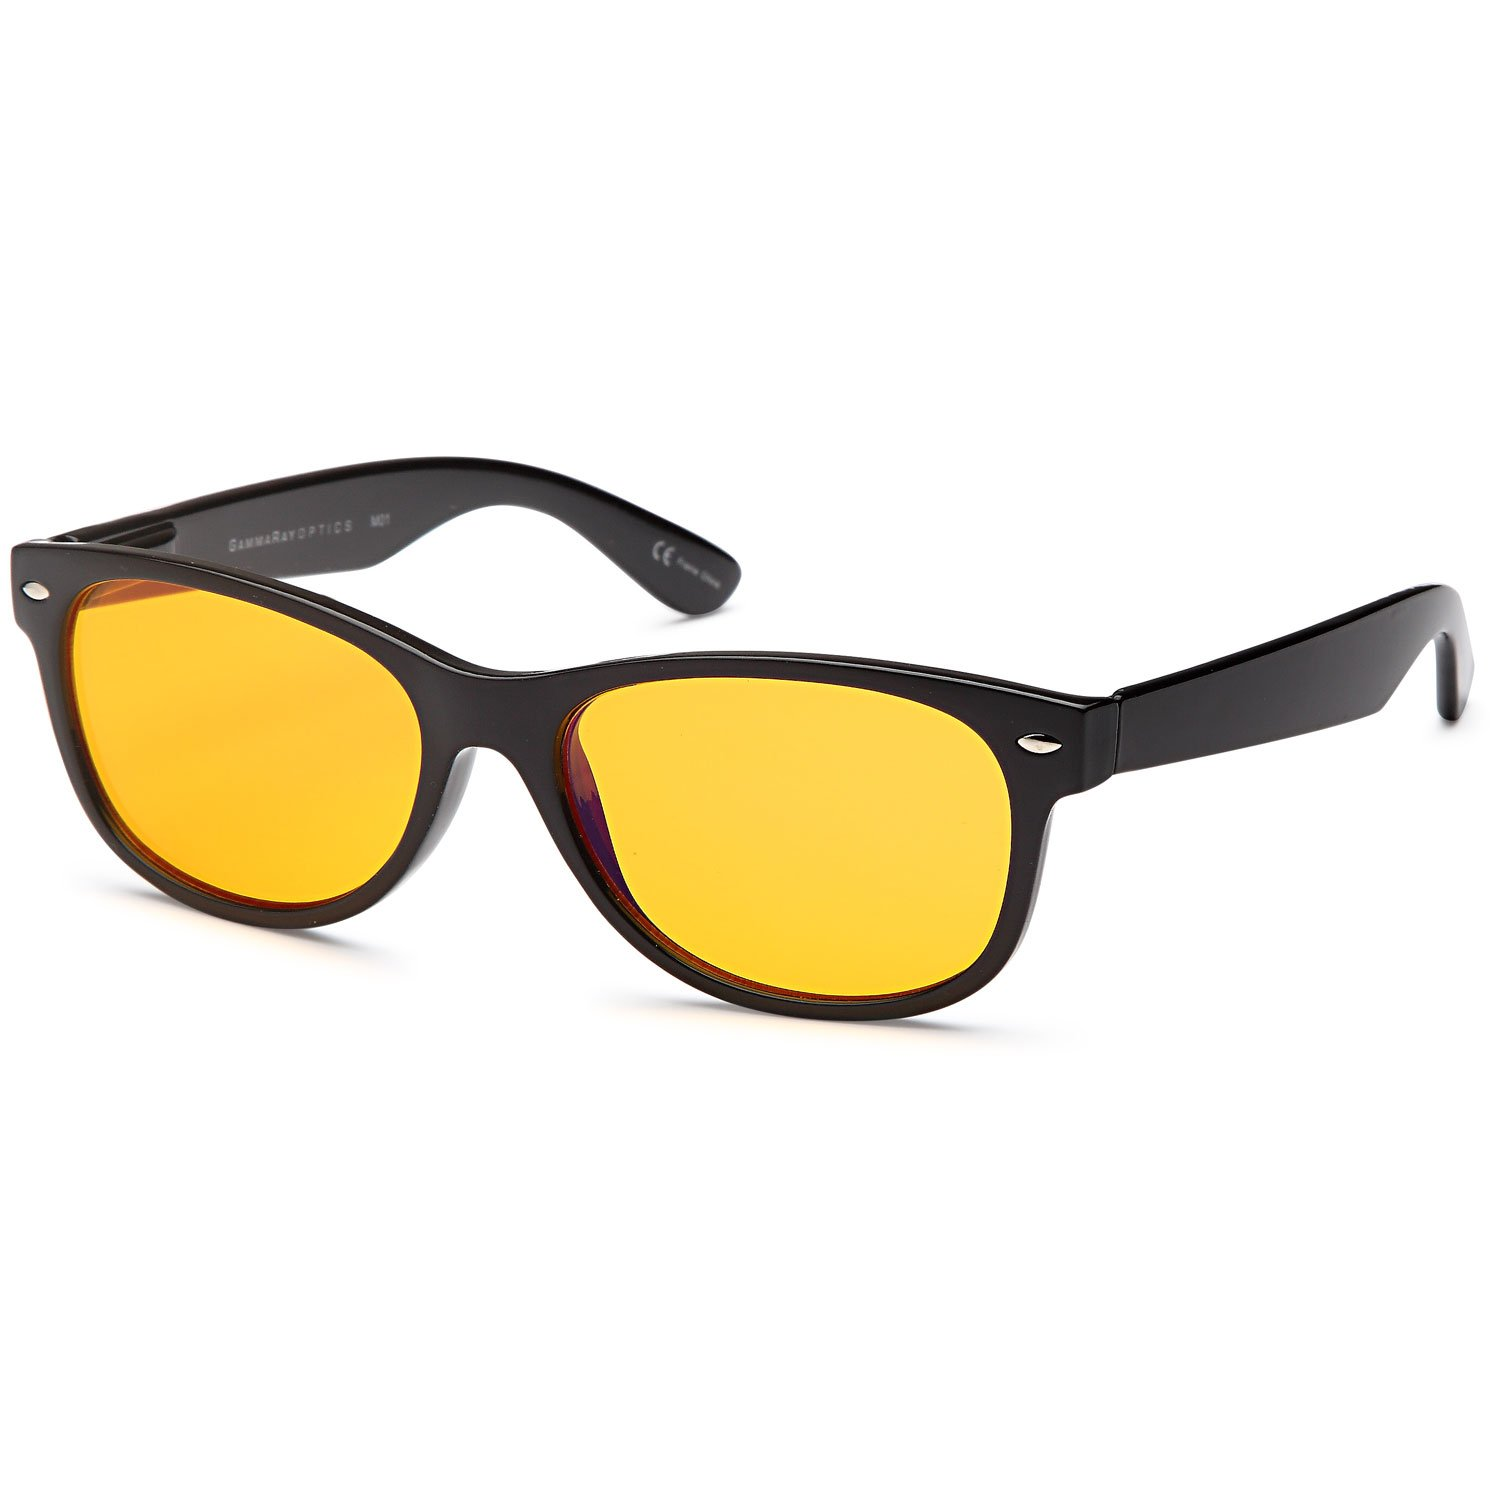 c4e752f04c0 Amazon.com  Gamma RAY 900 Better Sleep Night Time Screen Glasses Blue Light  Blocking Orange Lens for Computer Gaming TV Screen Viewing - with 0.00x ...